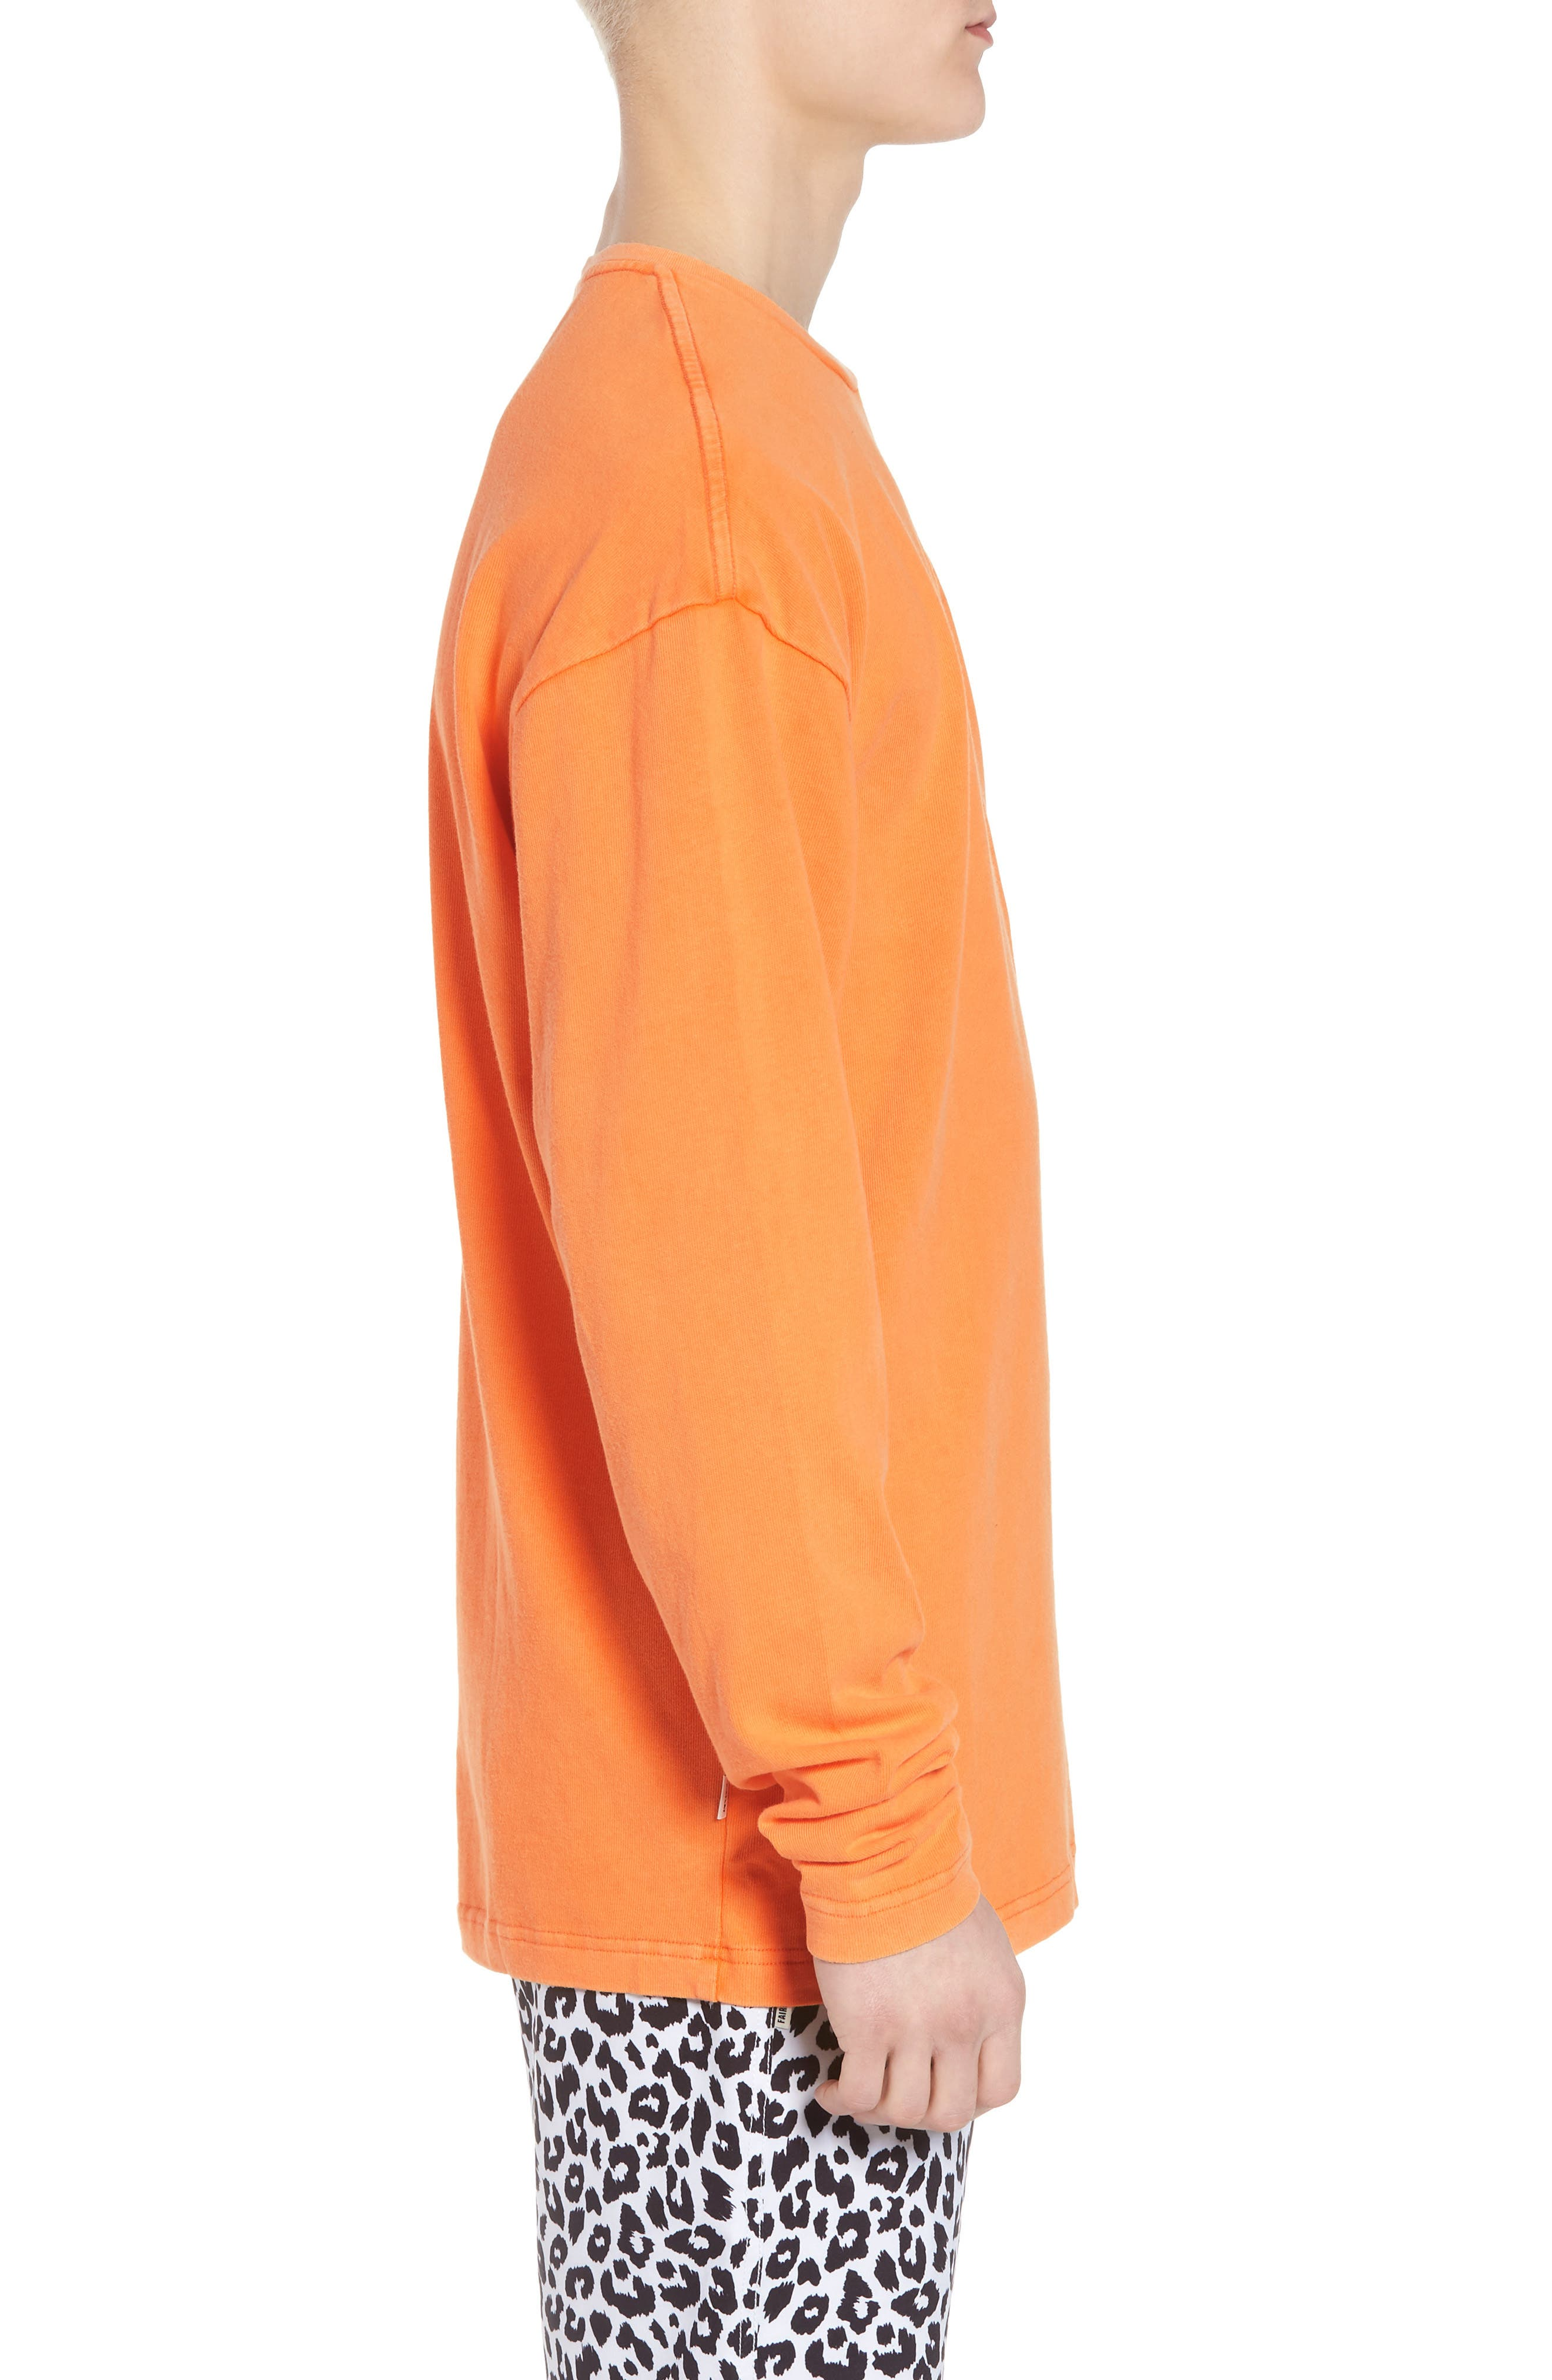 Anderson Sweatshirt,                             Alternate thumbnail 3, color,                             Orange